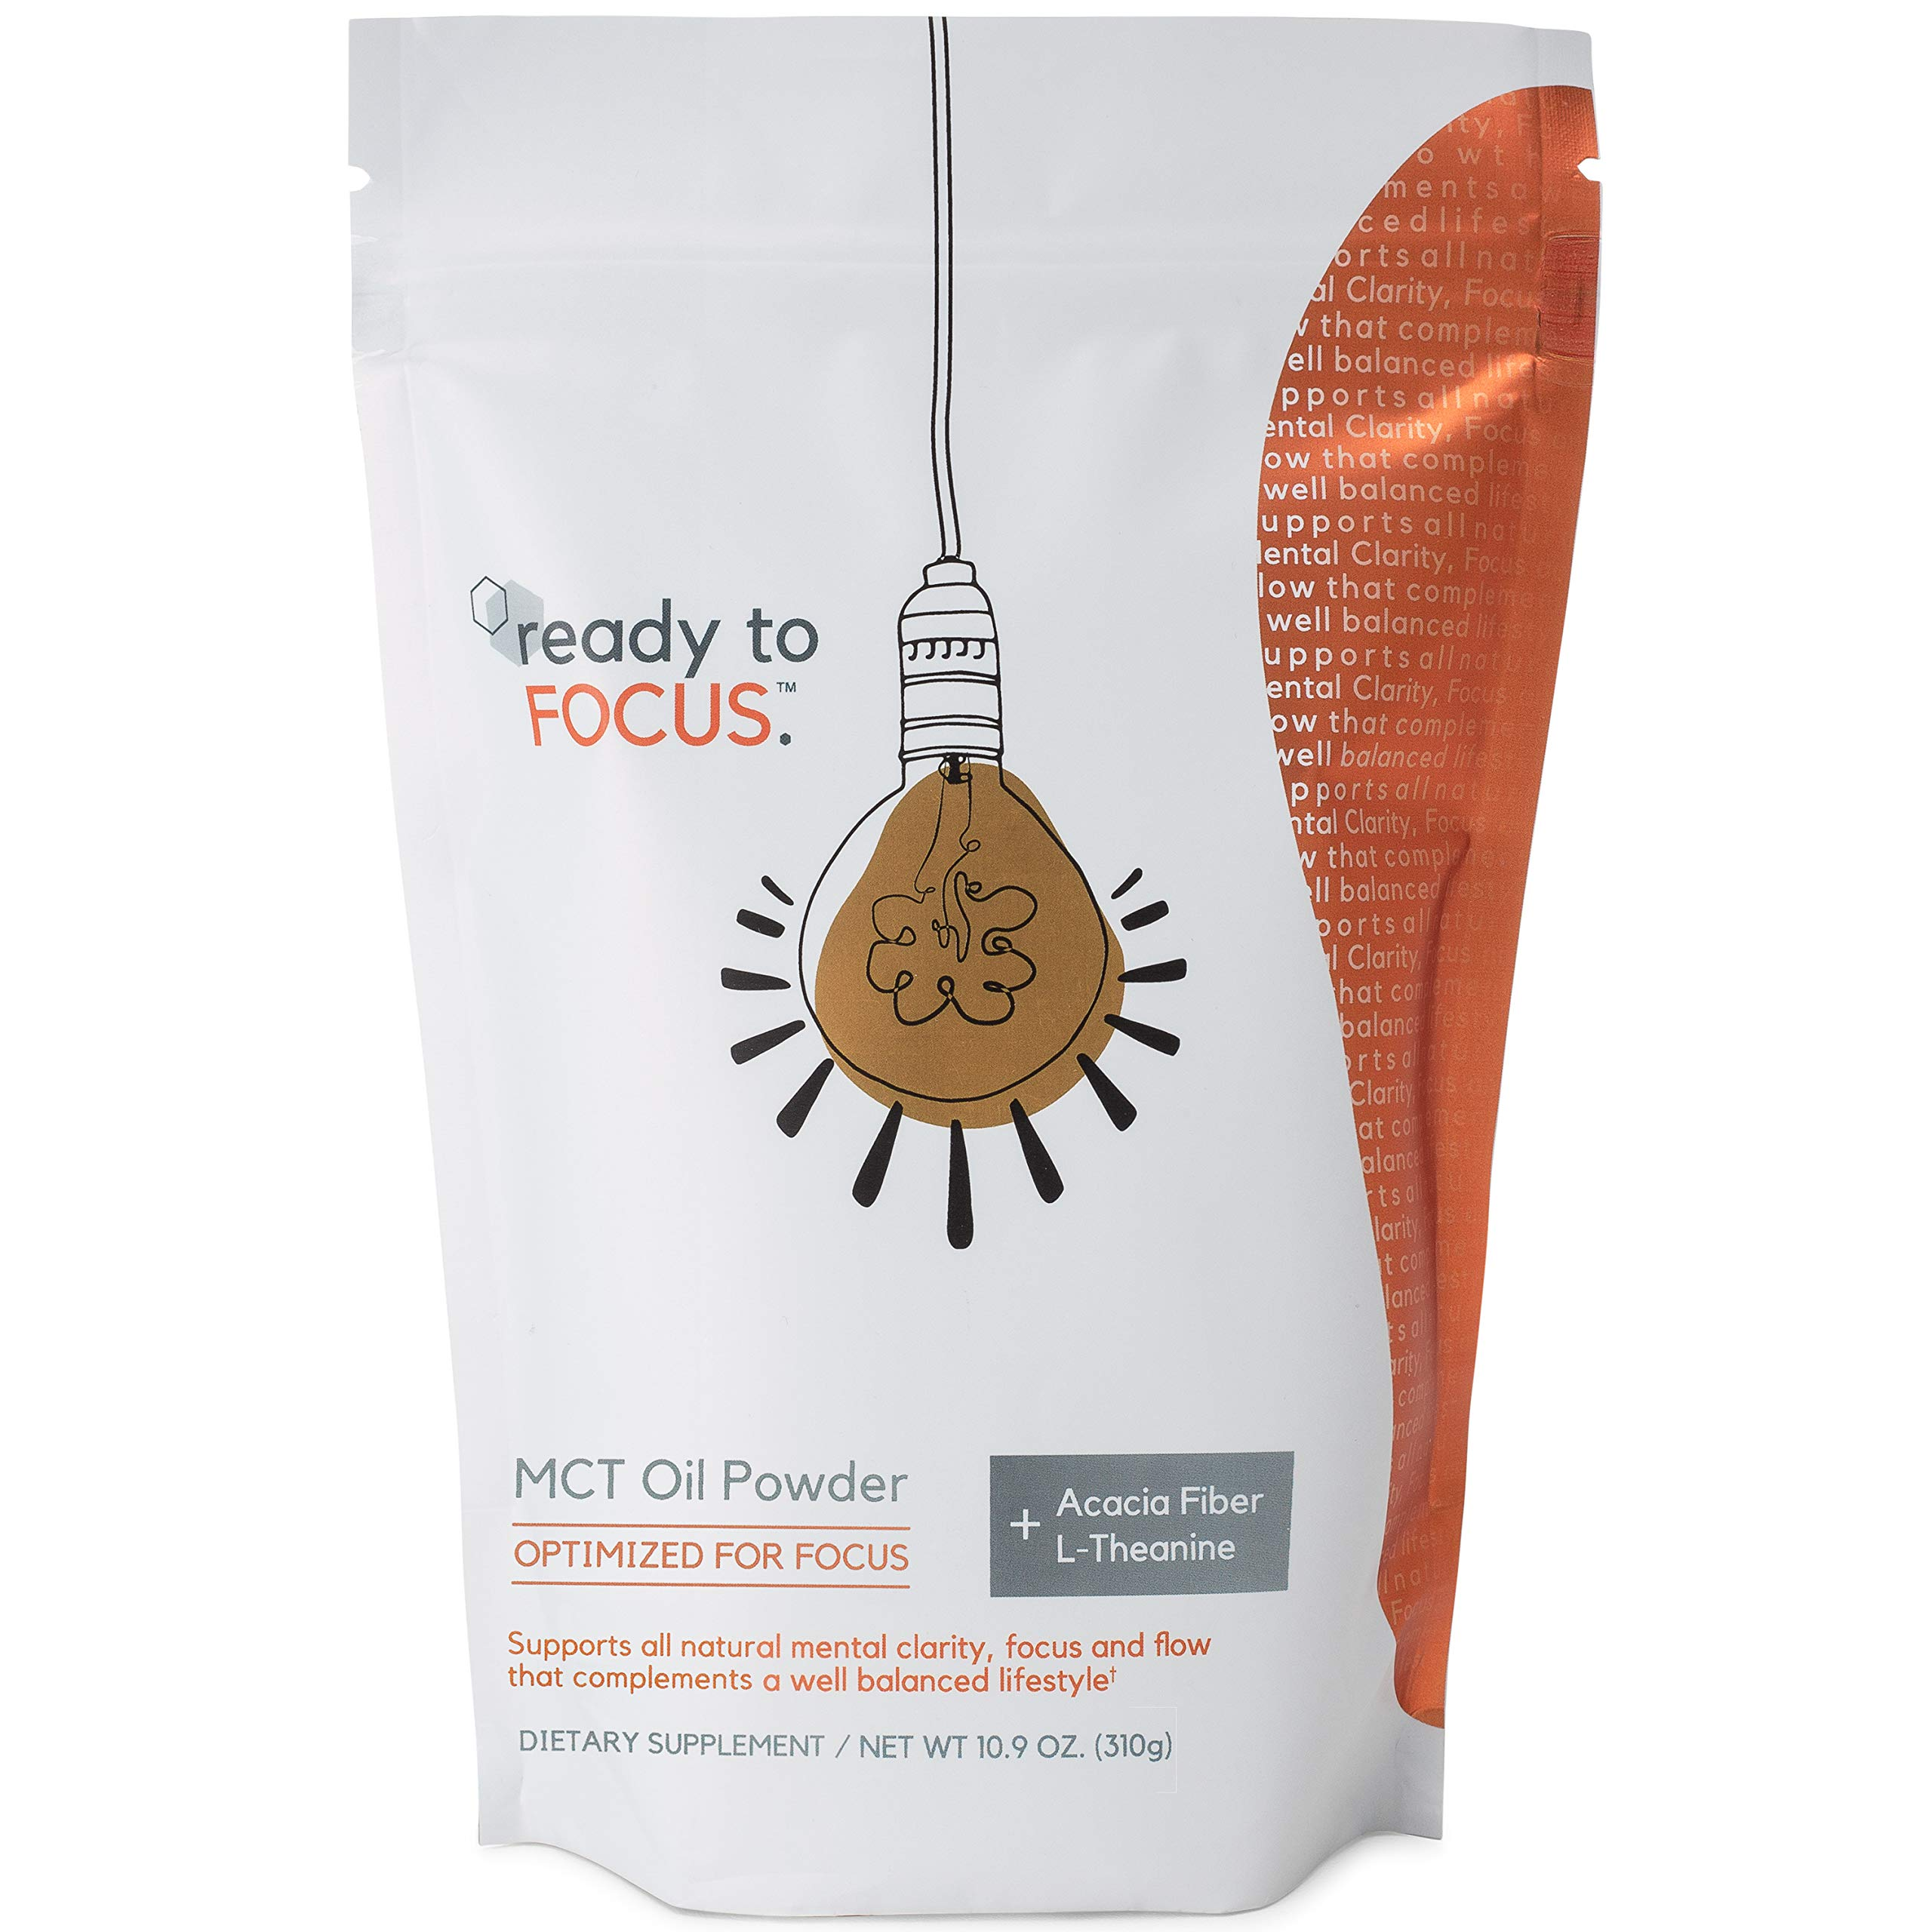 ready to FOCUS - Premium MCT Oil Powder Optimized for Mental Clarity and Focus (with L theanine) and Prebiotic Acacia Fiber - Perfect as a Keto Coffee Creamer or Caffeine Free Brain Boost by ready to FOCUS